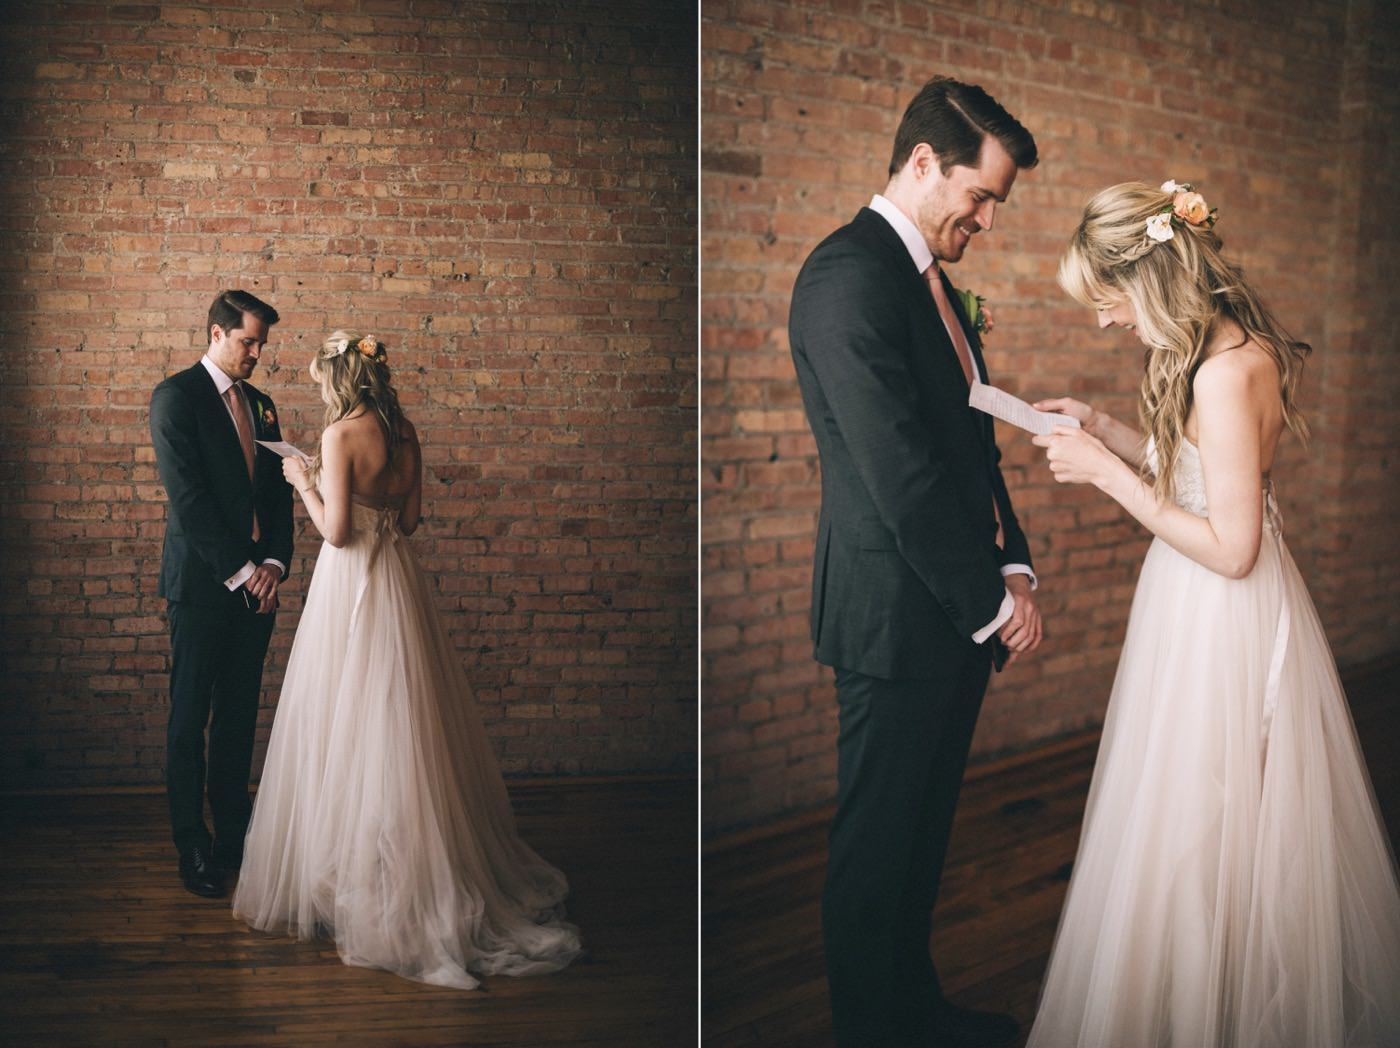 22_Lucy-Daniel-Chicago-Wedding-By-Sarah-Katherine-Davis-Photography0273edit_Lucy-Daniel-Chicago-Wedding-By-Sarah-Katherine-Davis-Photography0275edit.jpg